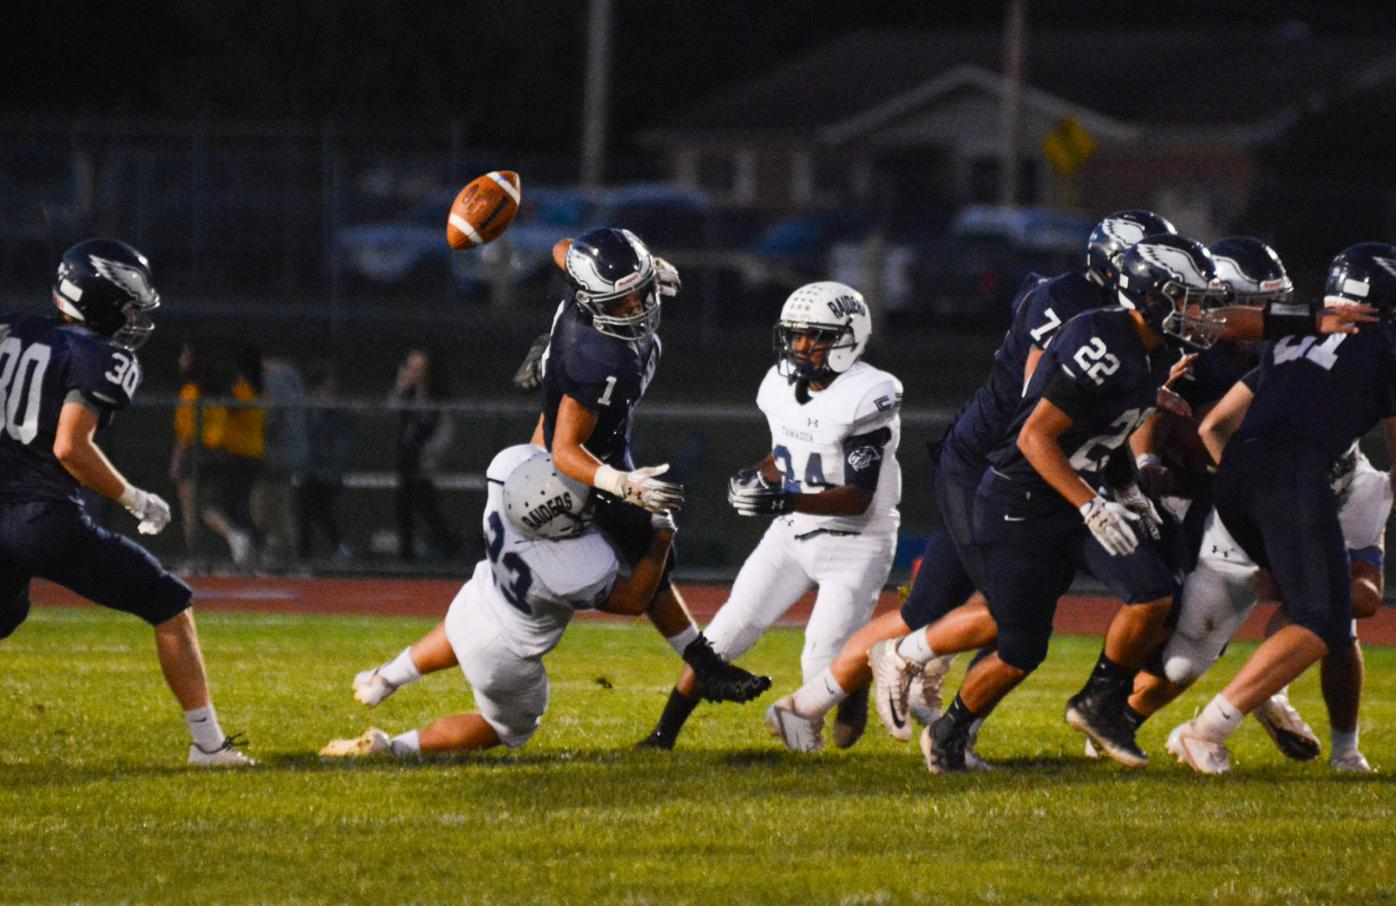 Tamaqua hopes playoff push helps in shortened season